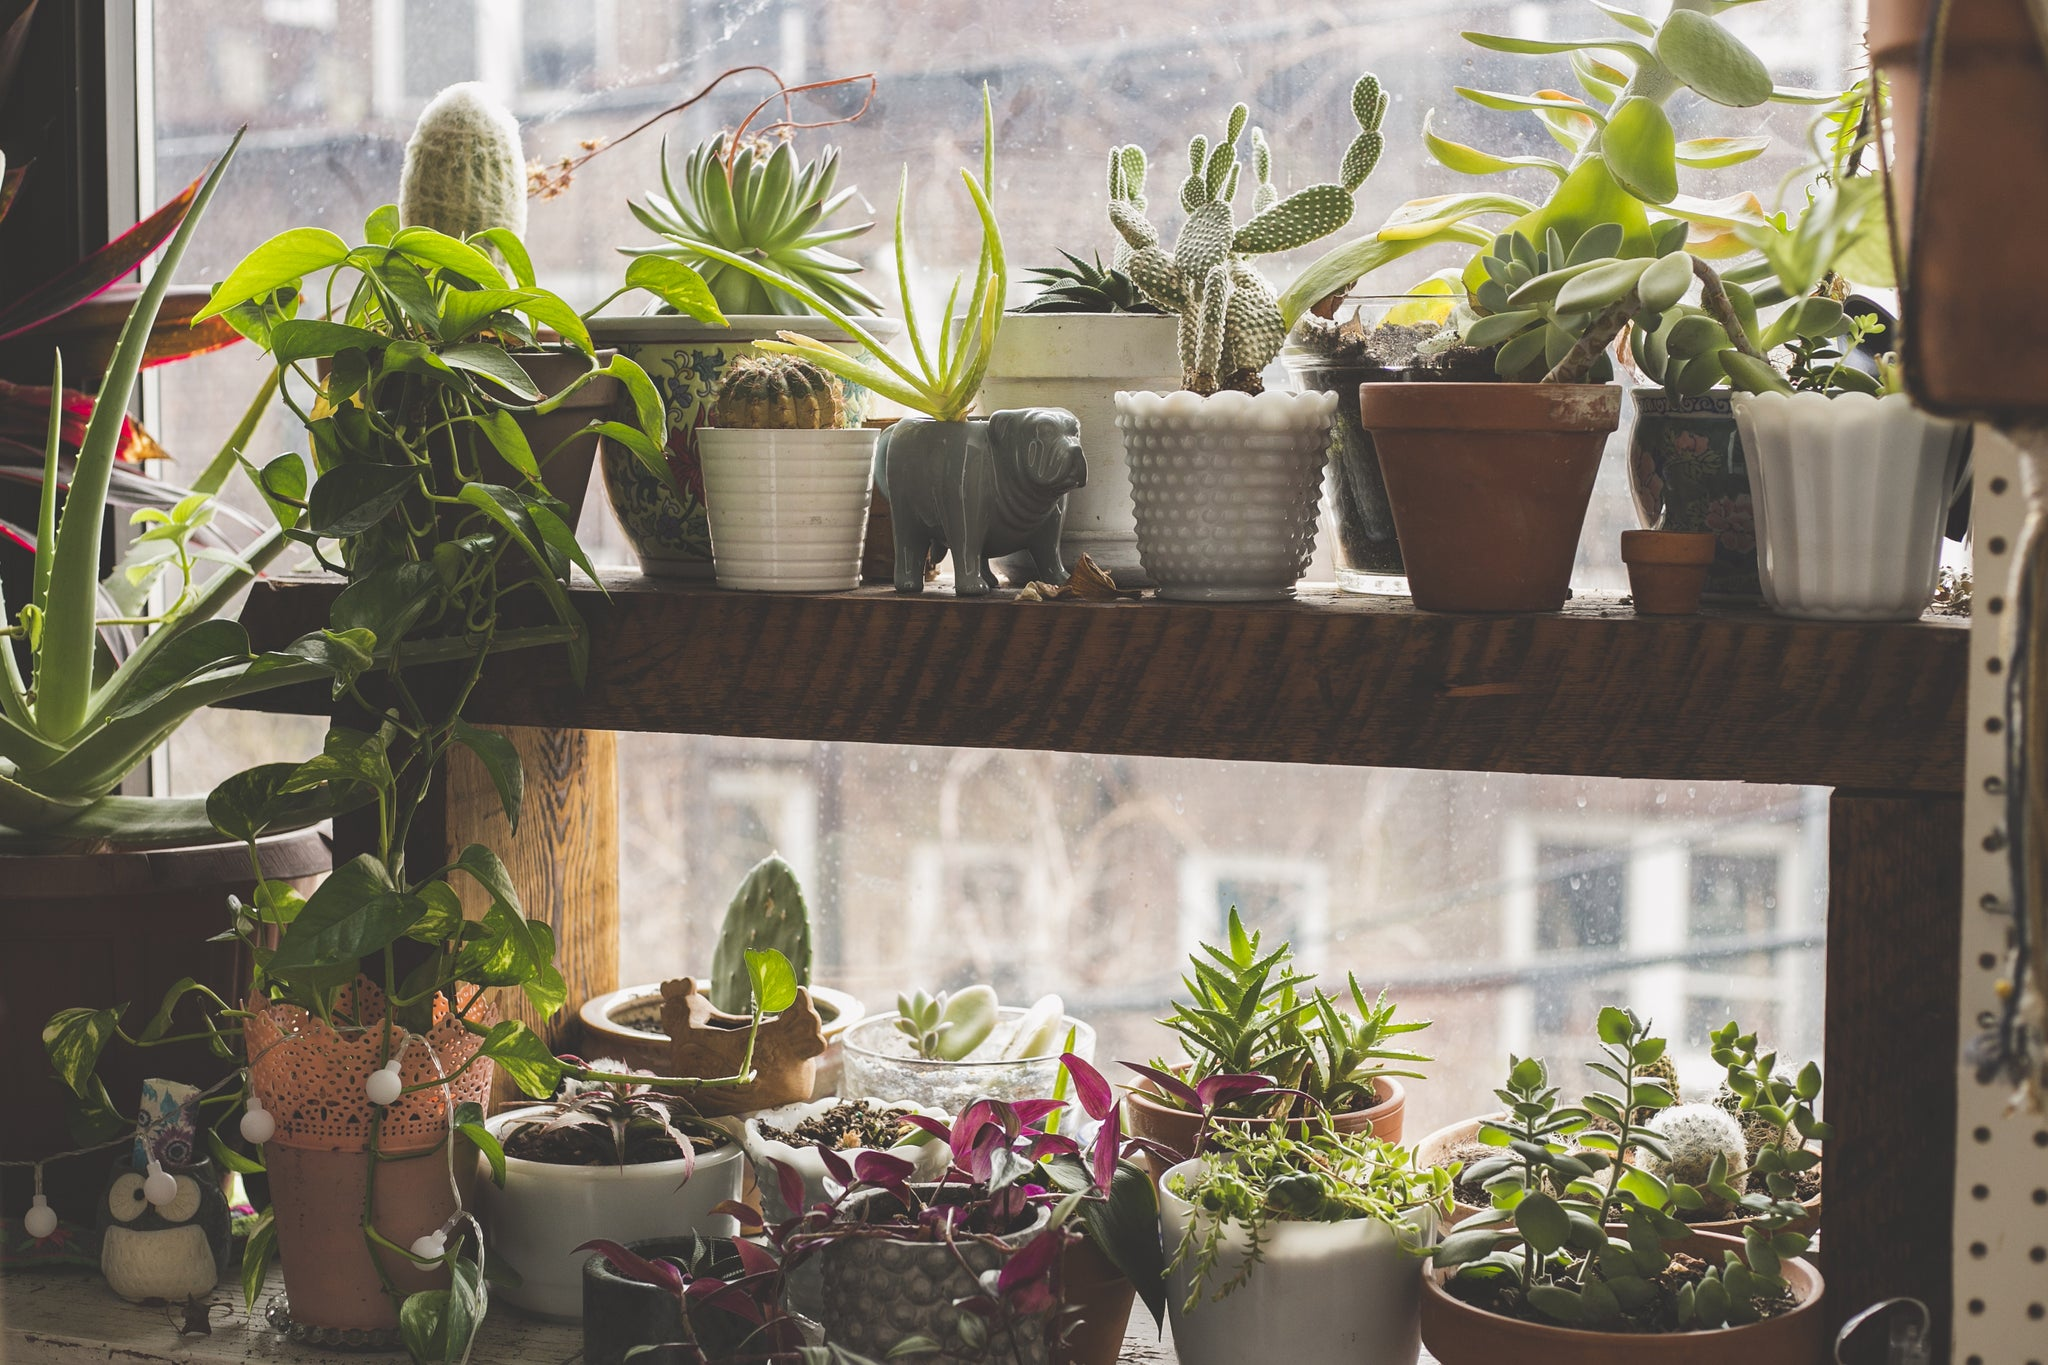 How To Care For Succulents Indoors During Winter Harddy